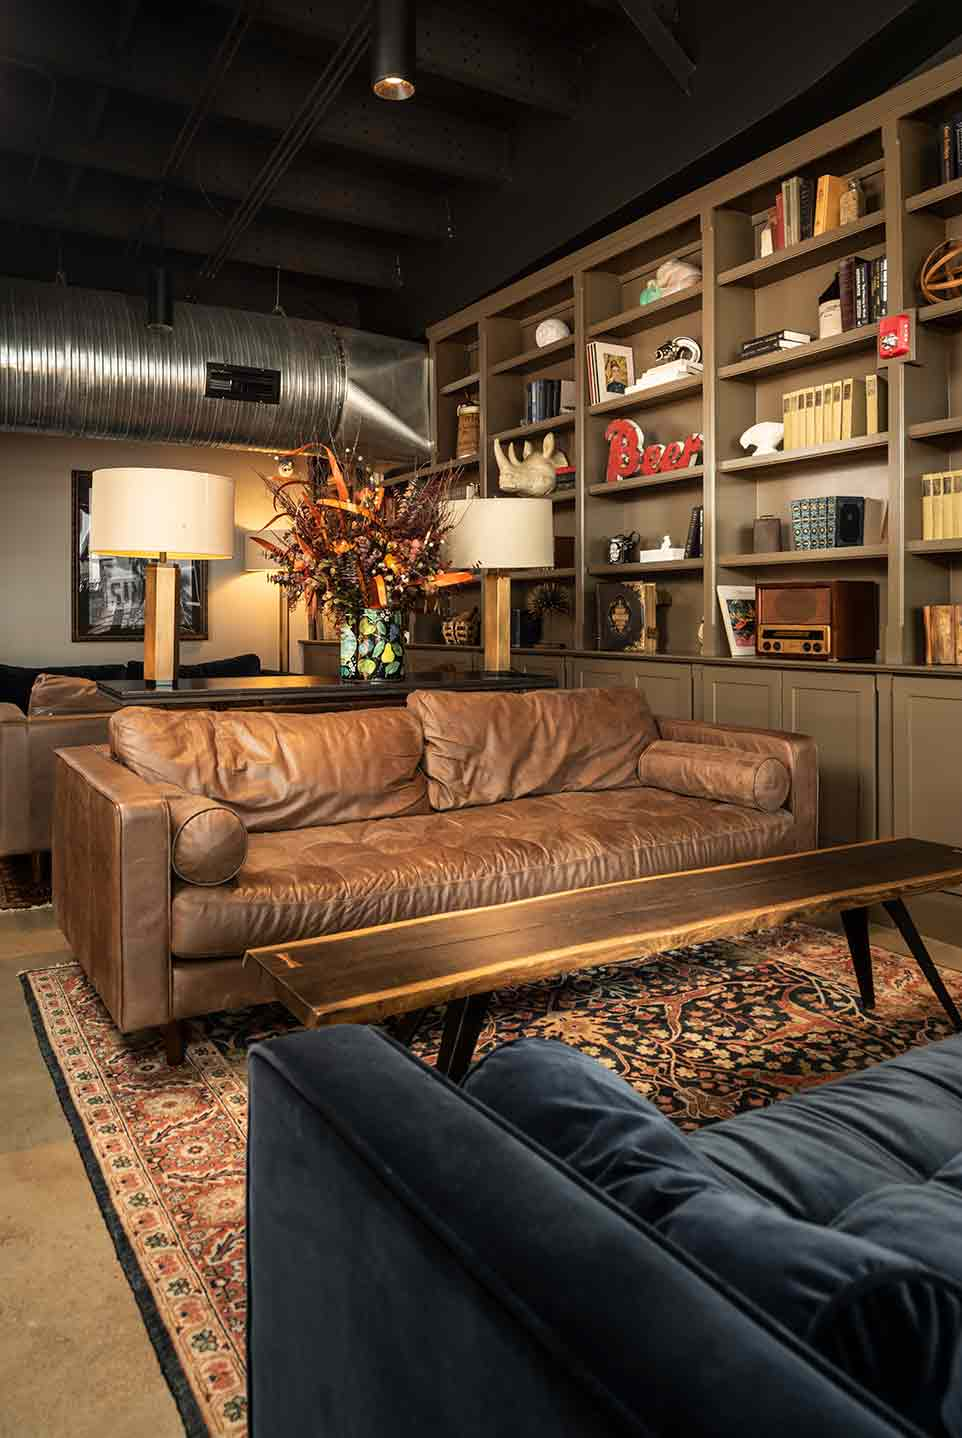 Photo shows an assortment of warm lighting that projects a quite mood amongst the leather seating area and book shelves.